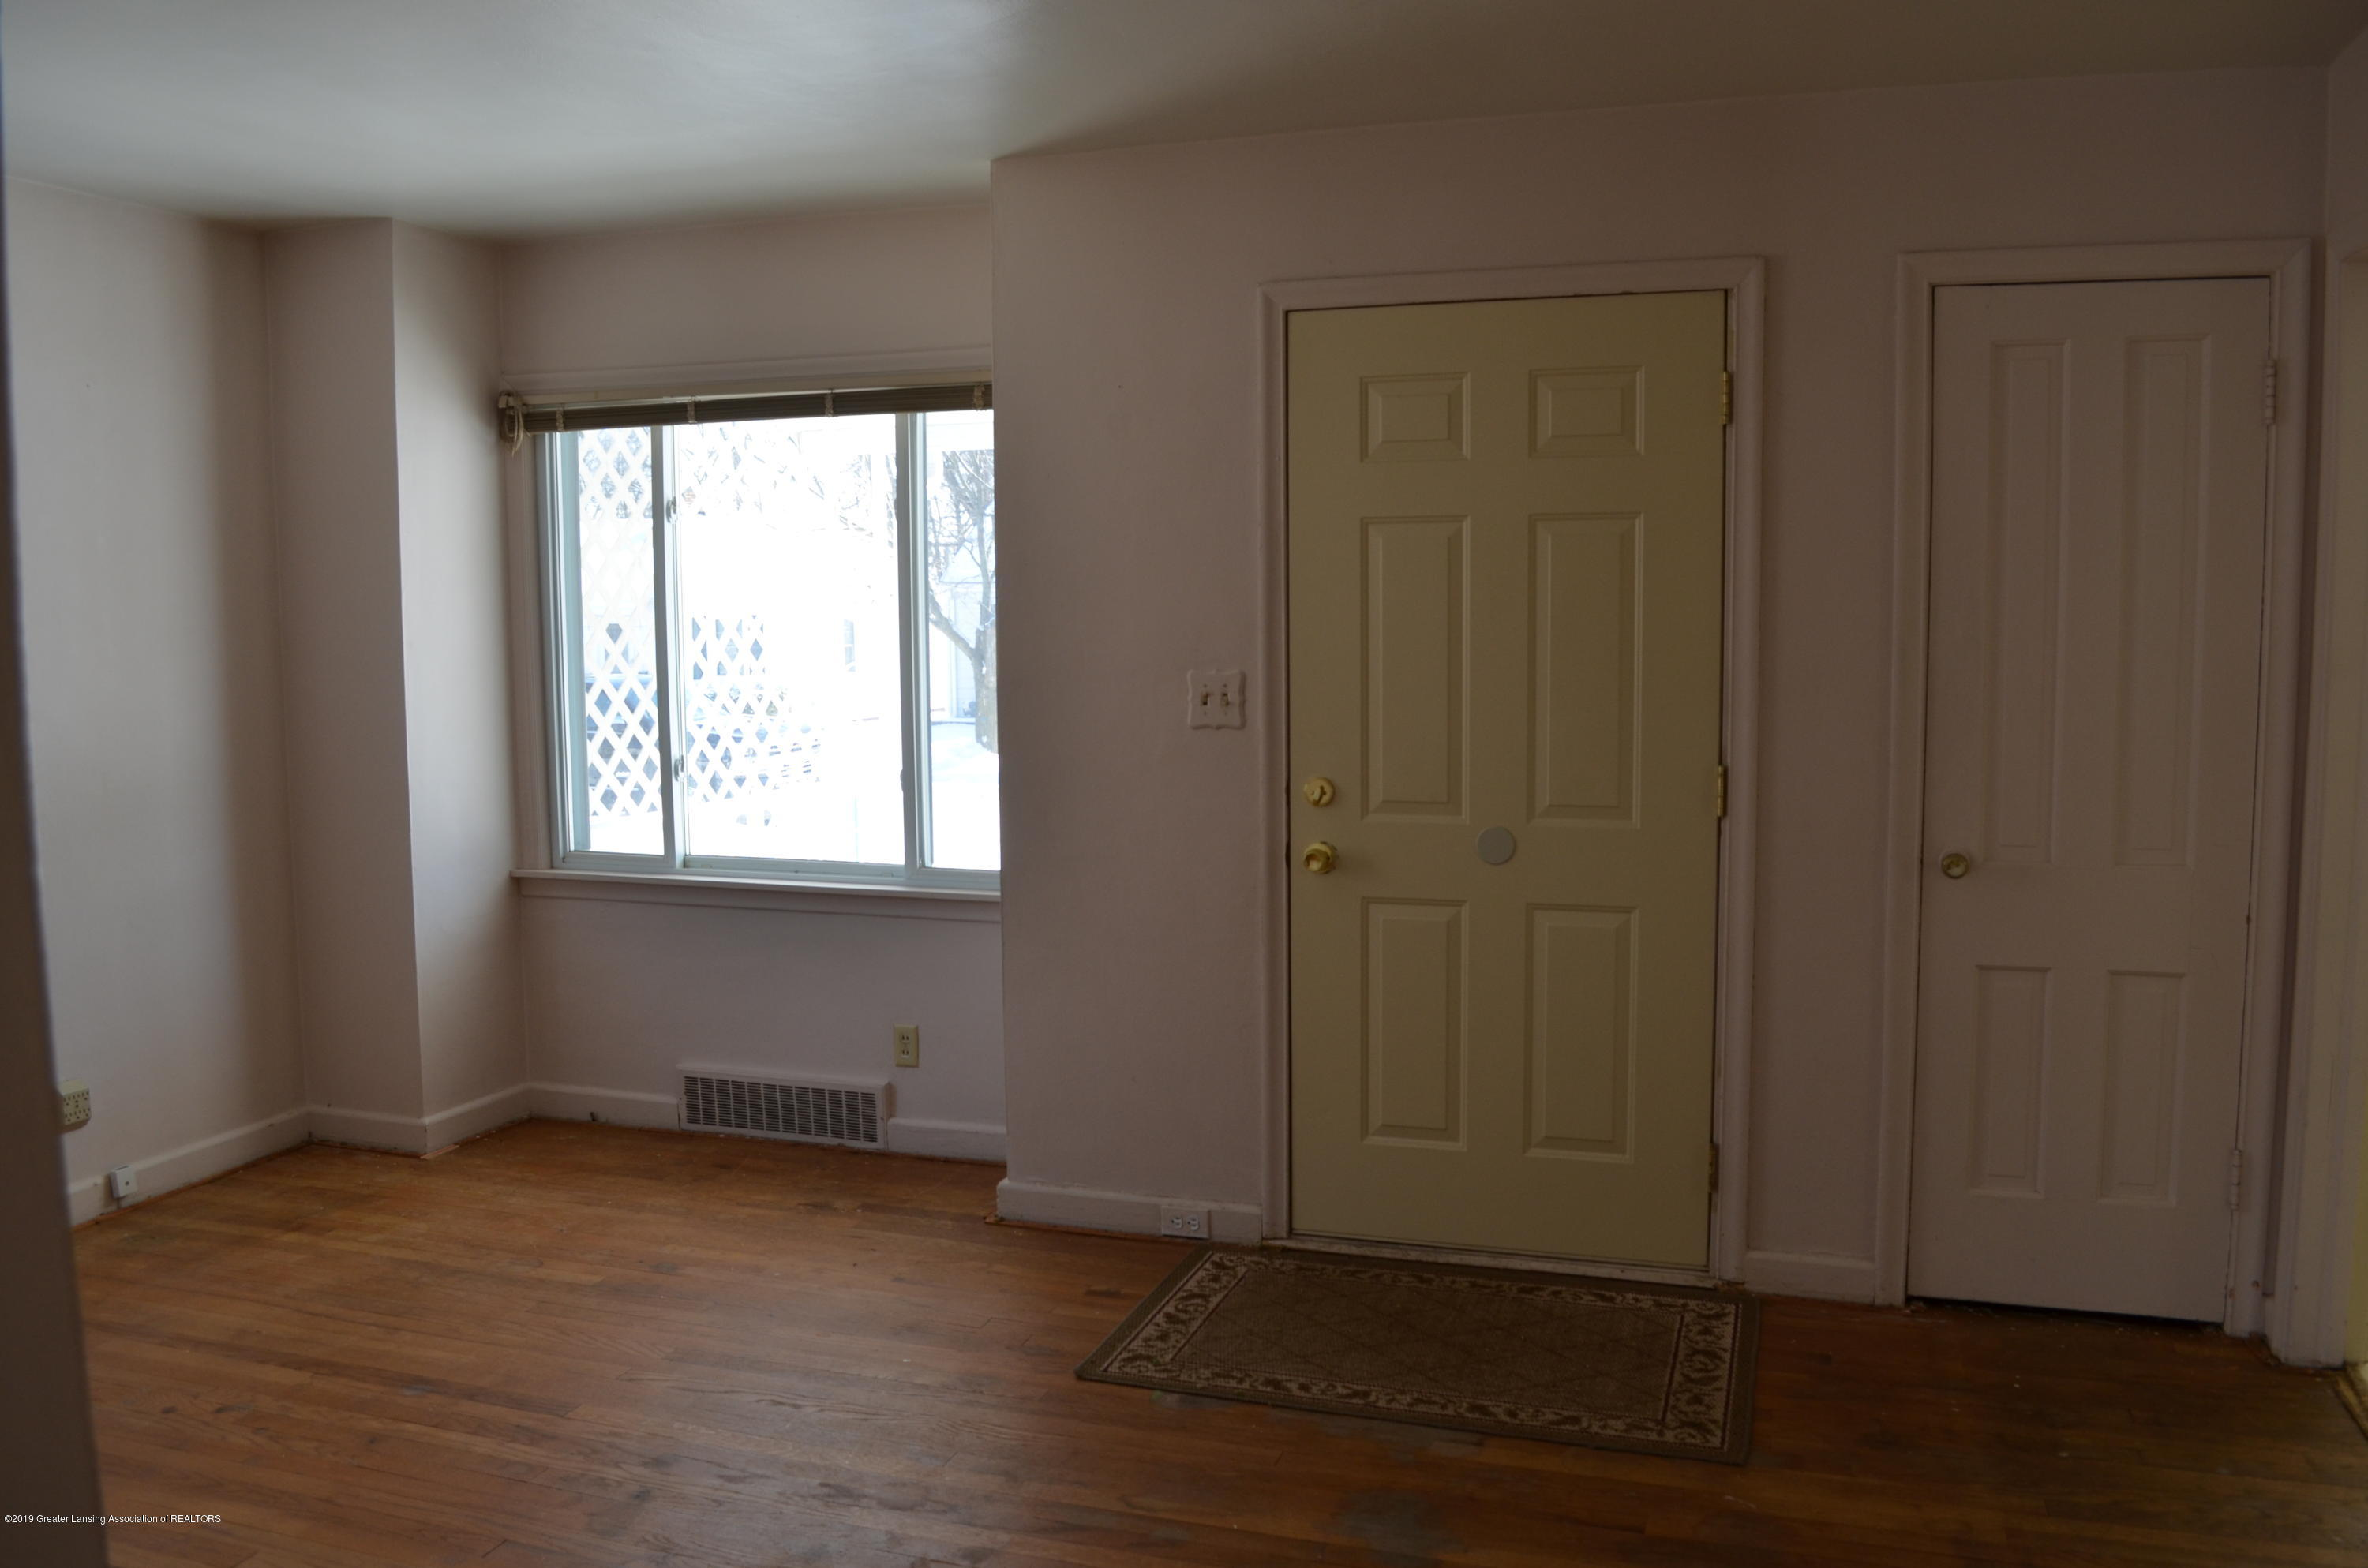 1200 W Rundle Ave - Livingroom - 2